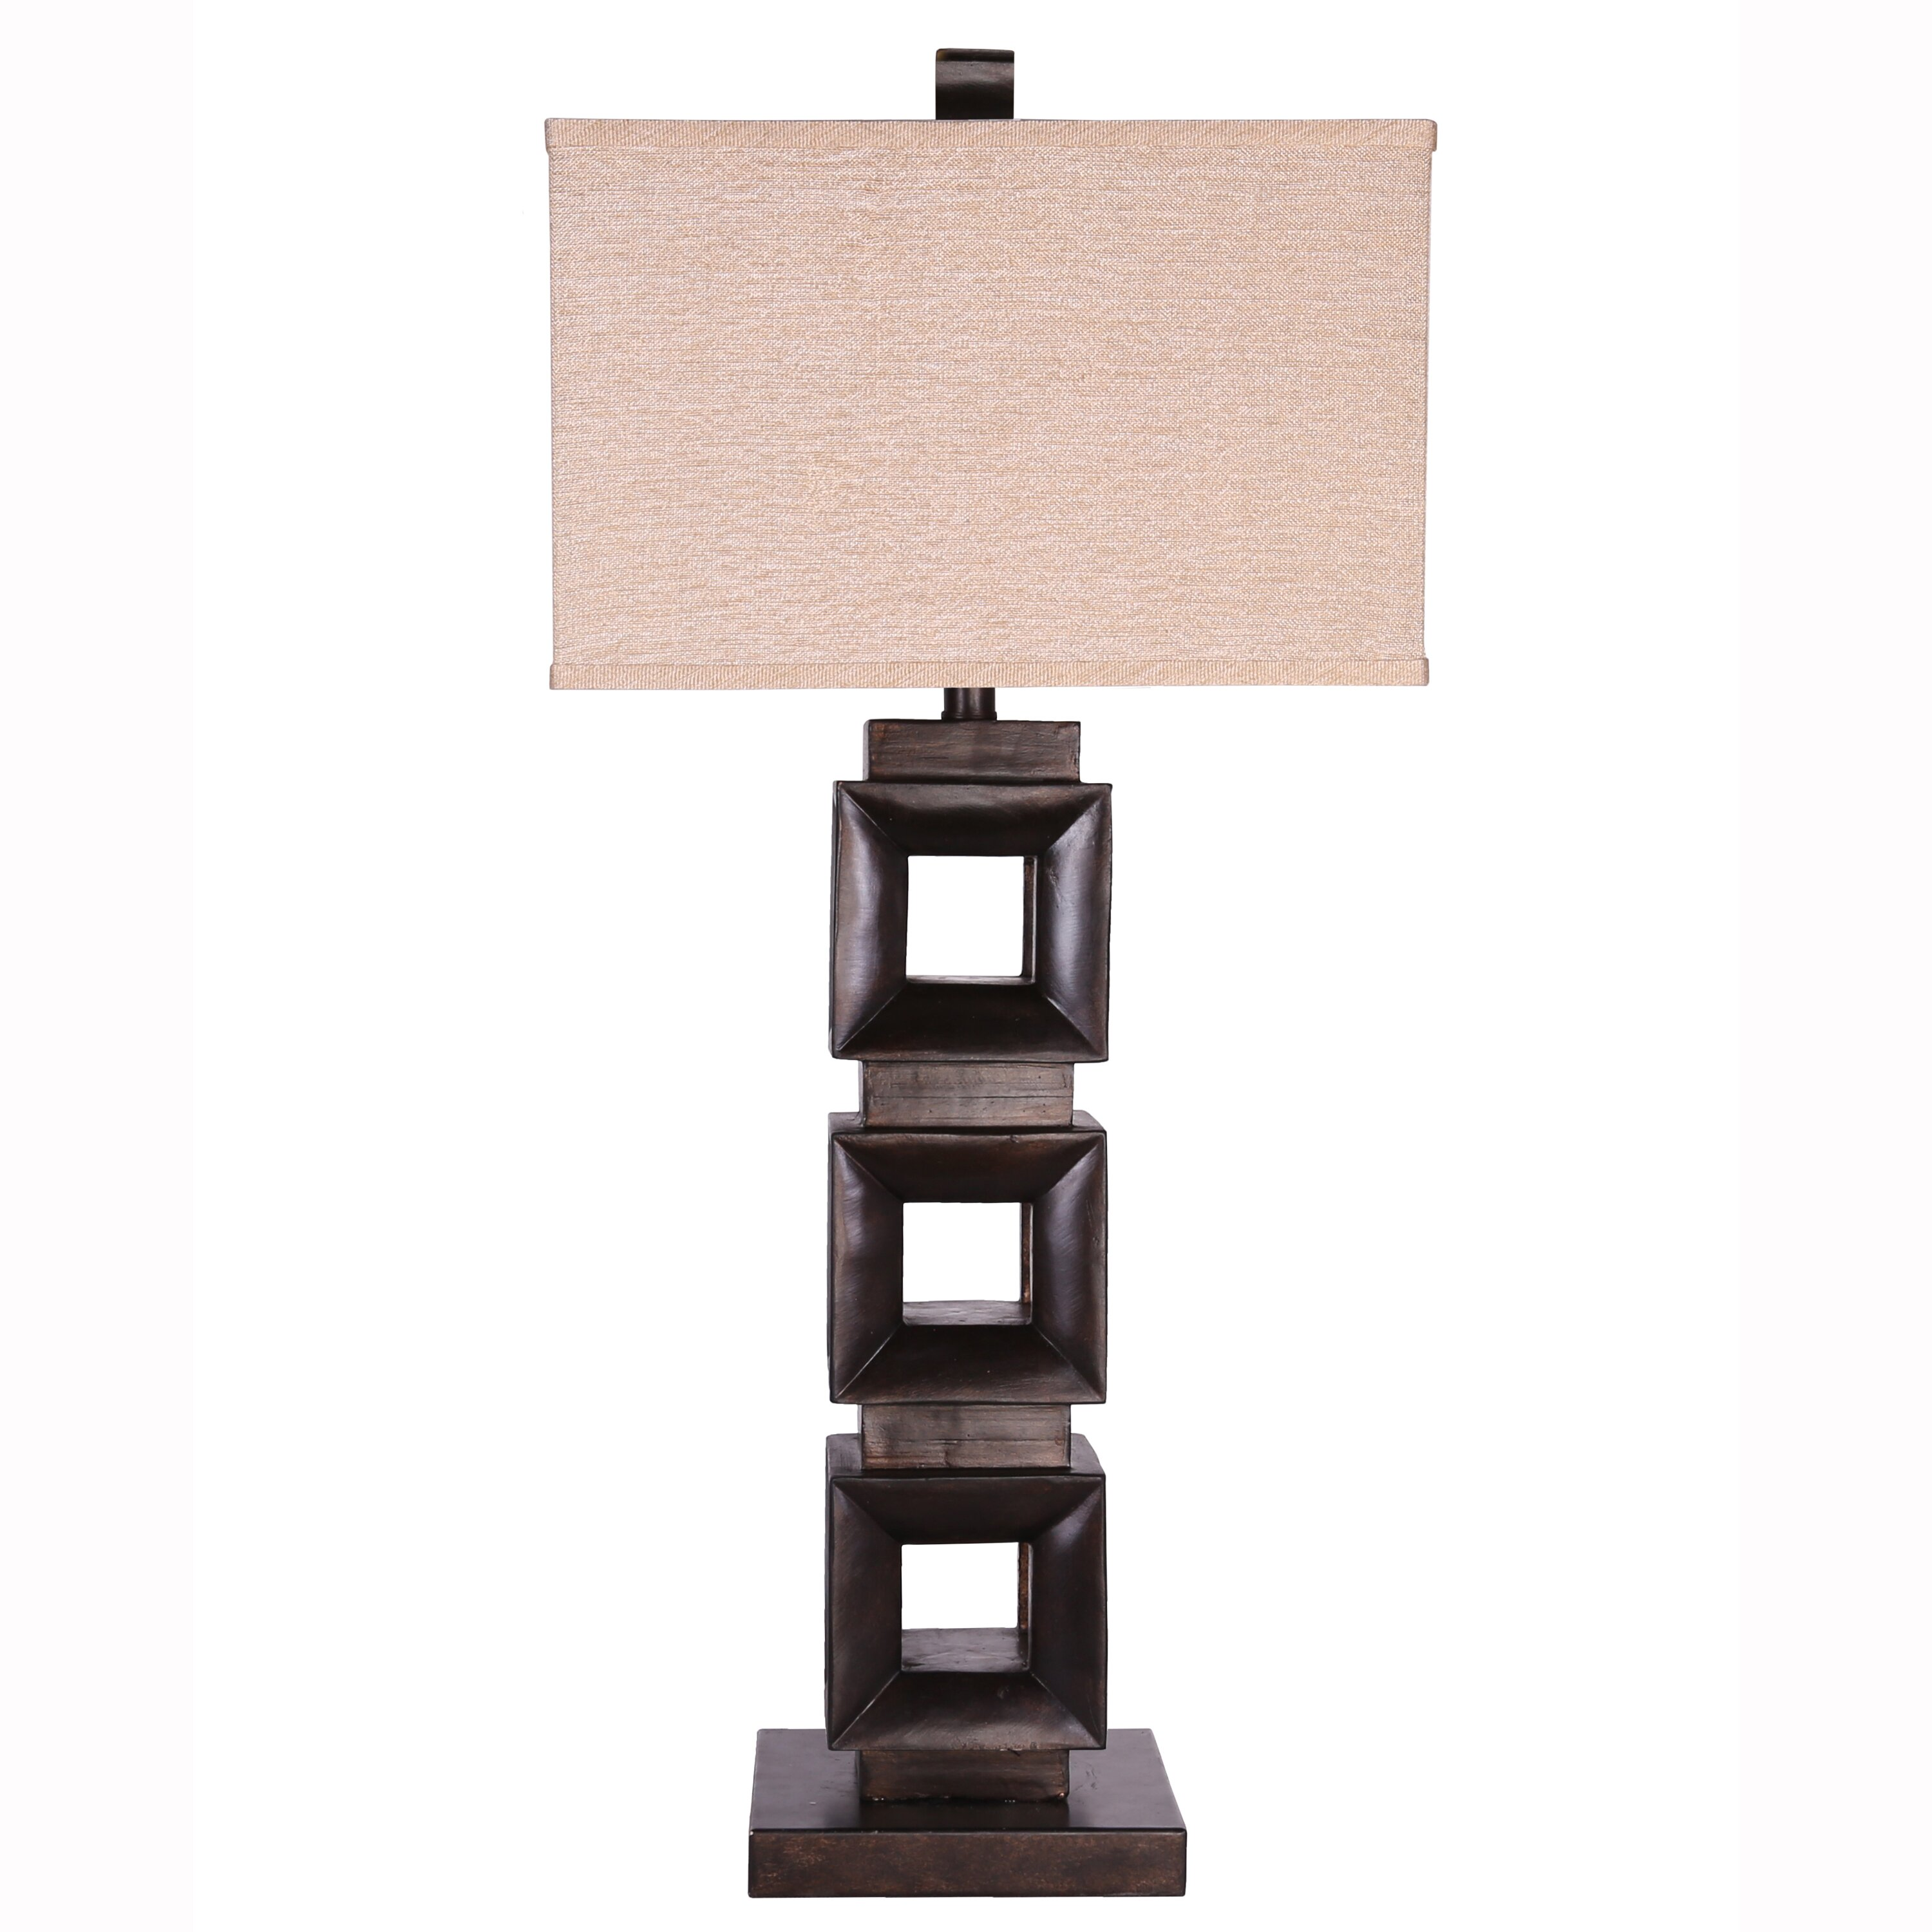 Lighting lamps table lamps wildon home 174 sku cst40256